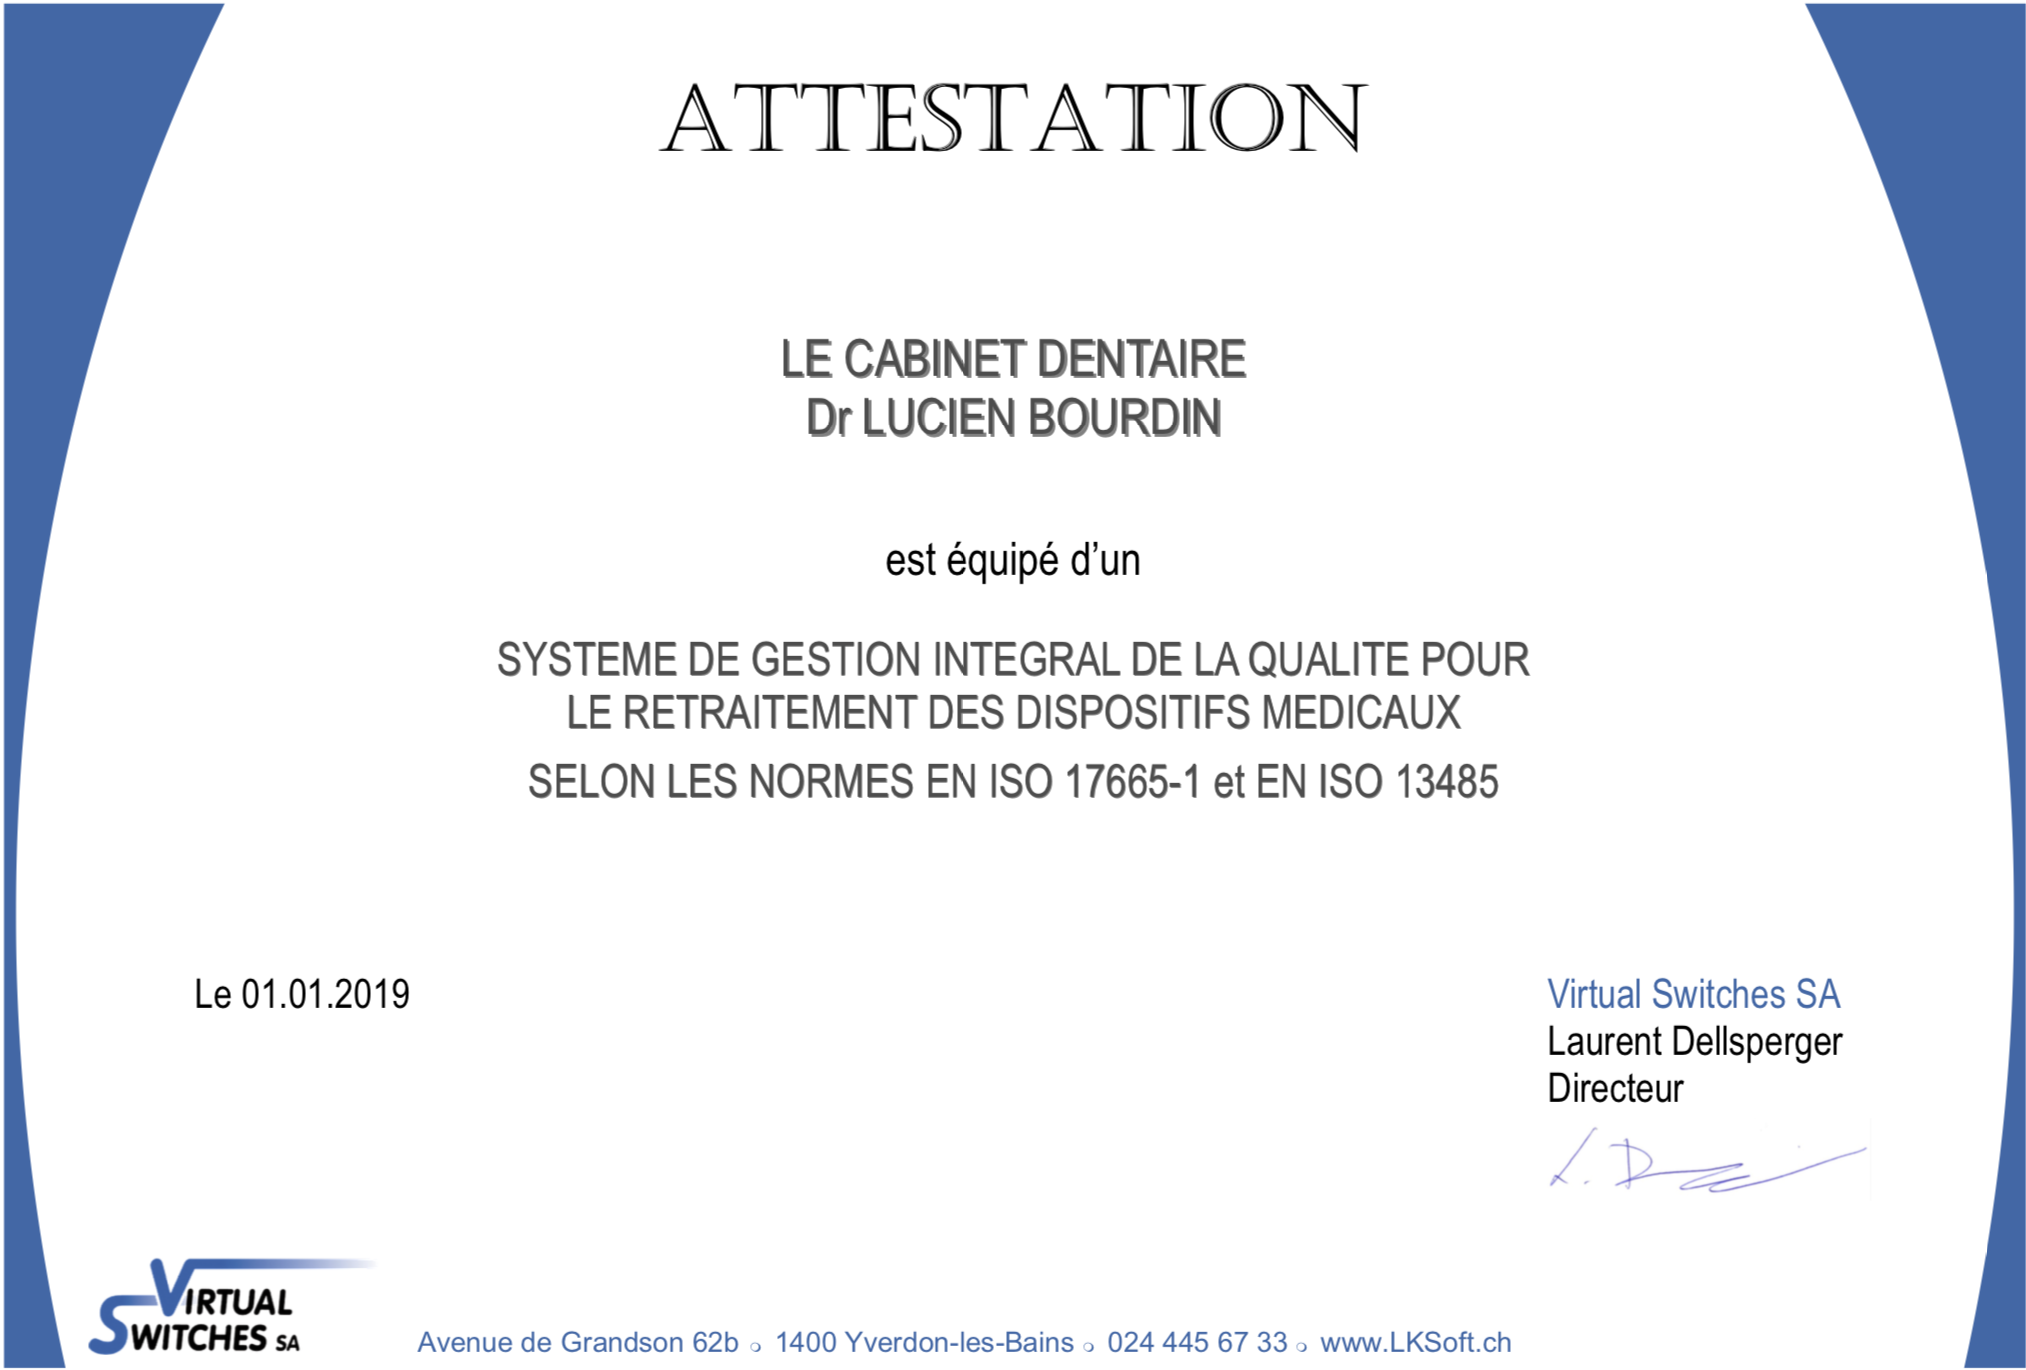 //bourdin-dentiste.ch/wp-content/uploads/2019/05/attestation_bourdin_dentiste.png